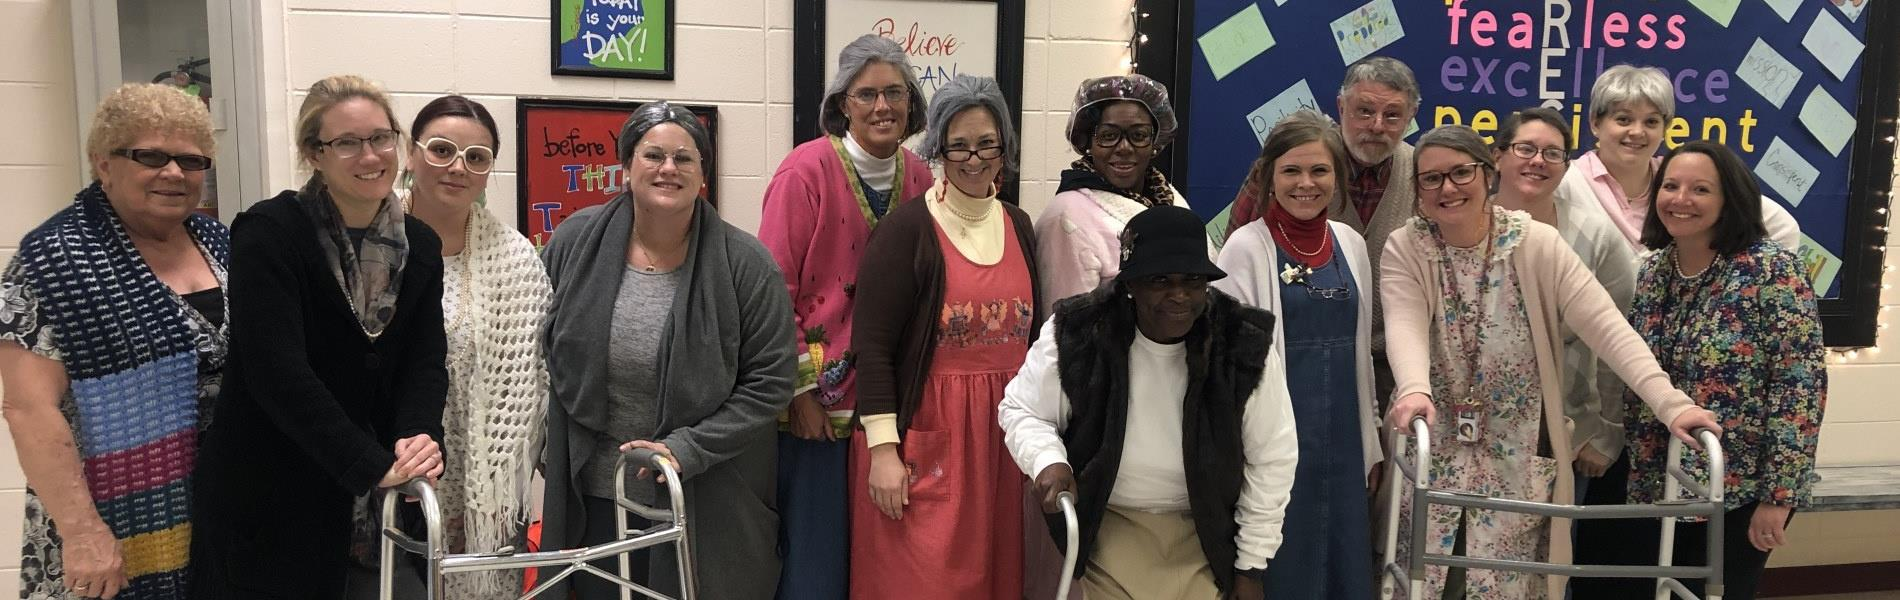 HLES 100TH DAY